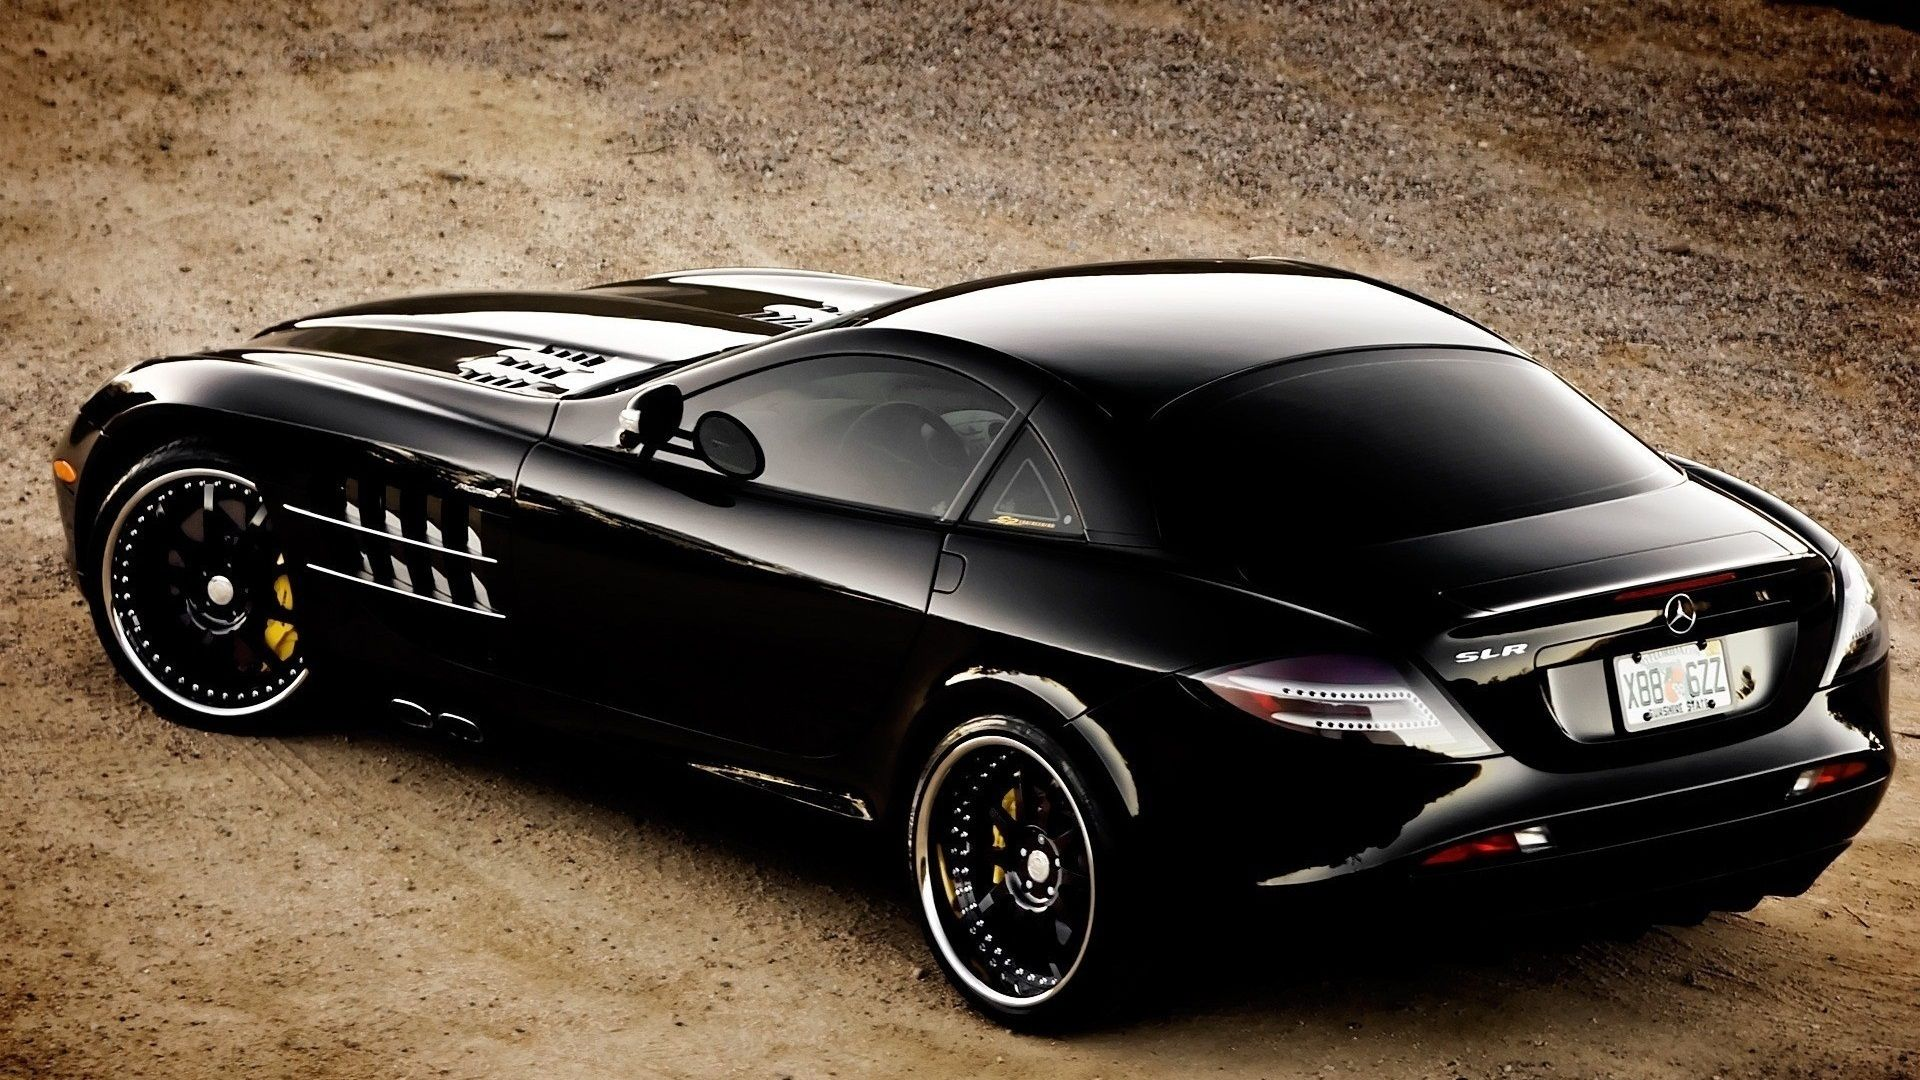 Mercedes benz slr mclaren black is a beauty exotic for Mercedes benz slr